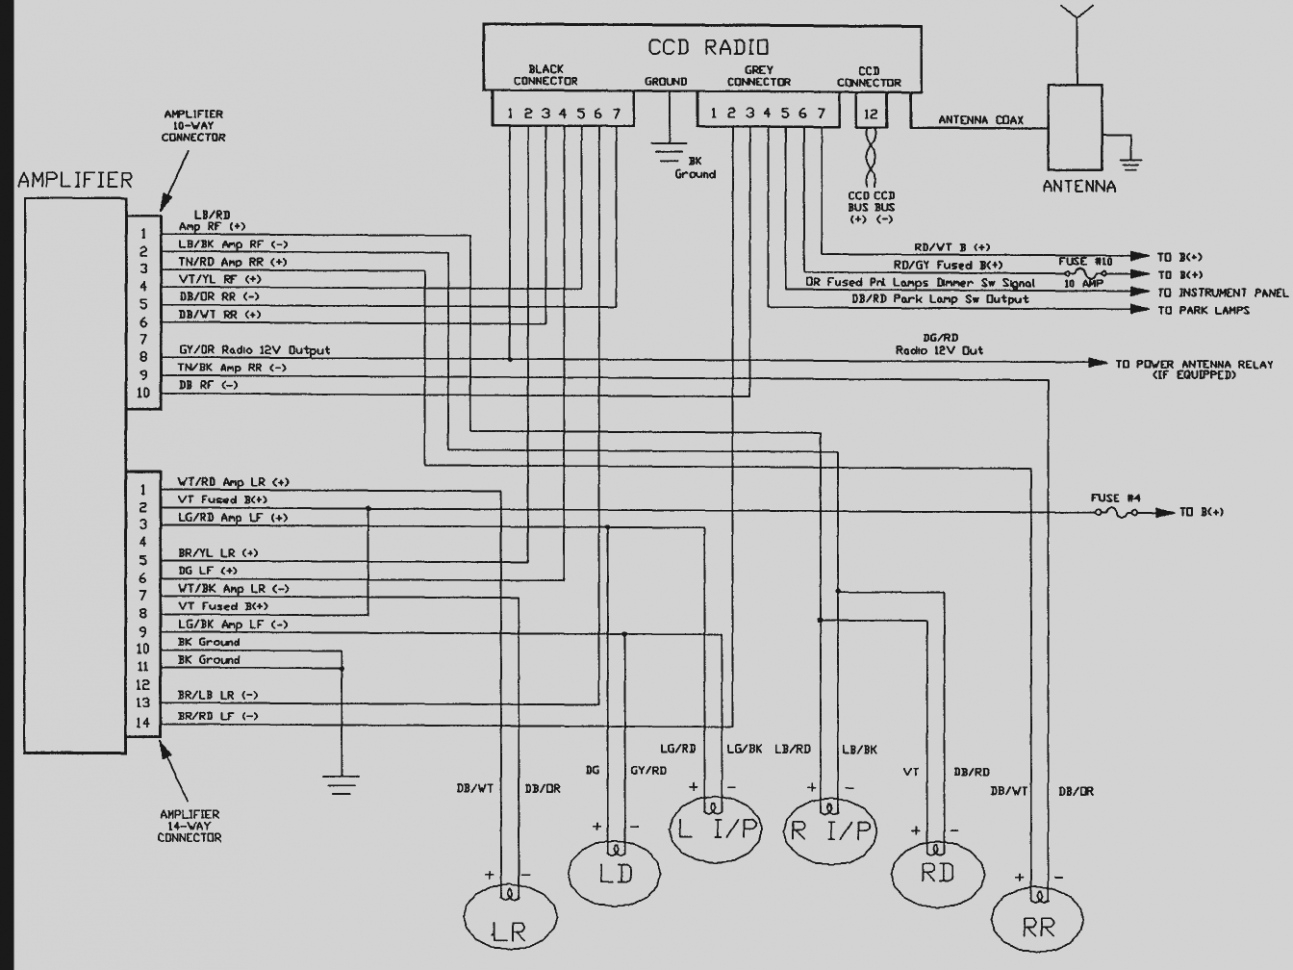 [DIAGRAM] Jeep Grand Cherokee Infinity Wiring Diagram FULL